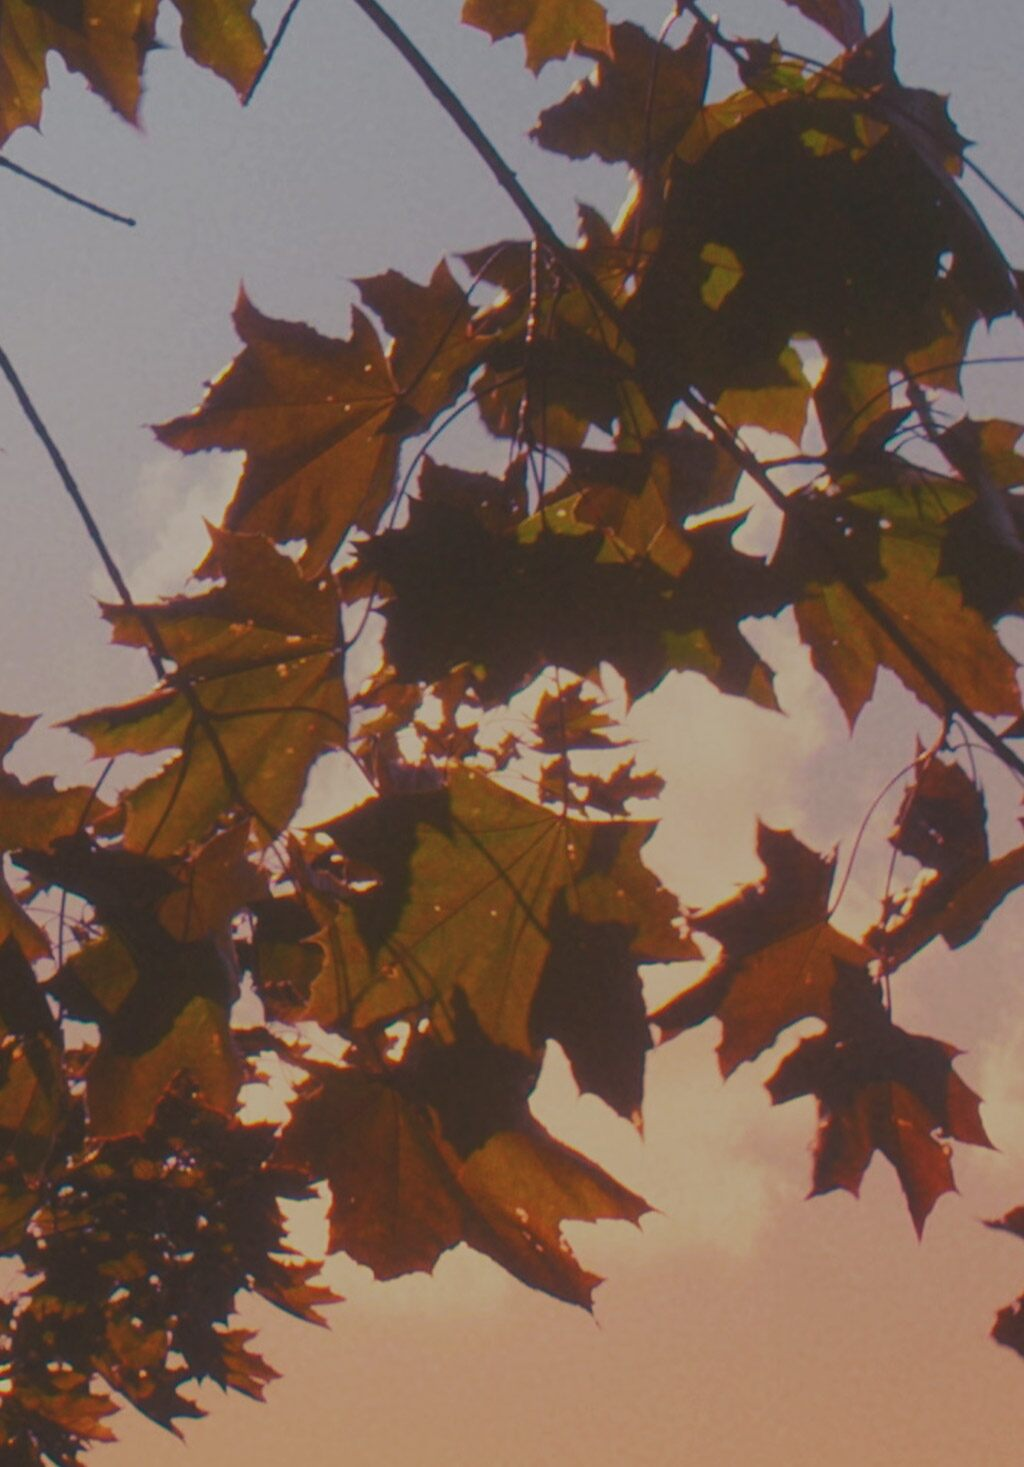 Fall leaves against a blush colored sky.